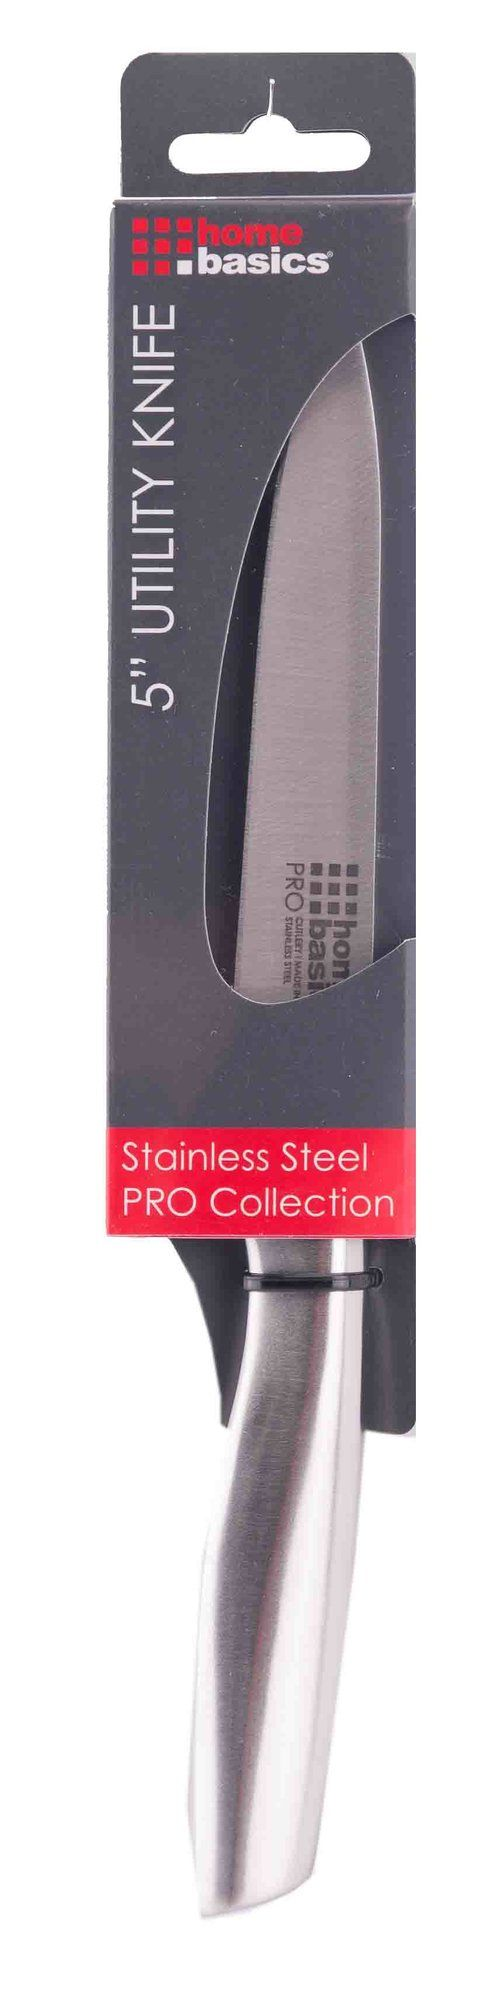 """5"""" Stainless Steel Handle Utility Knife"""